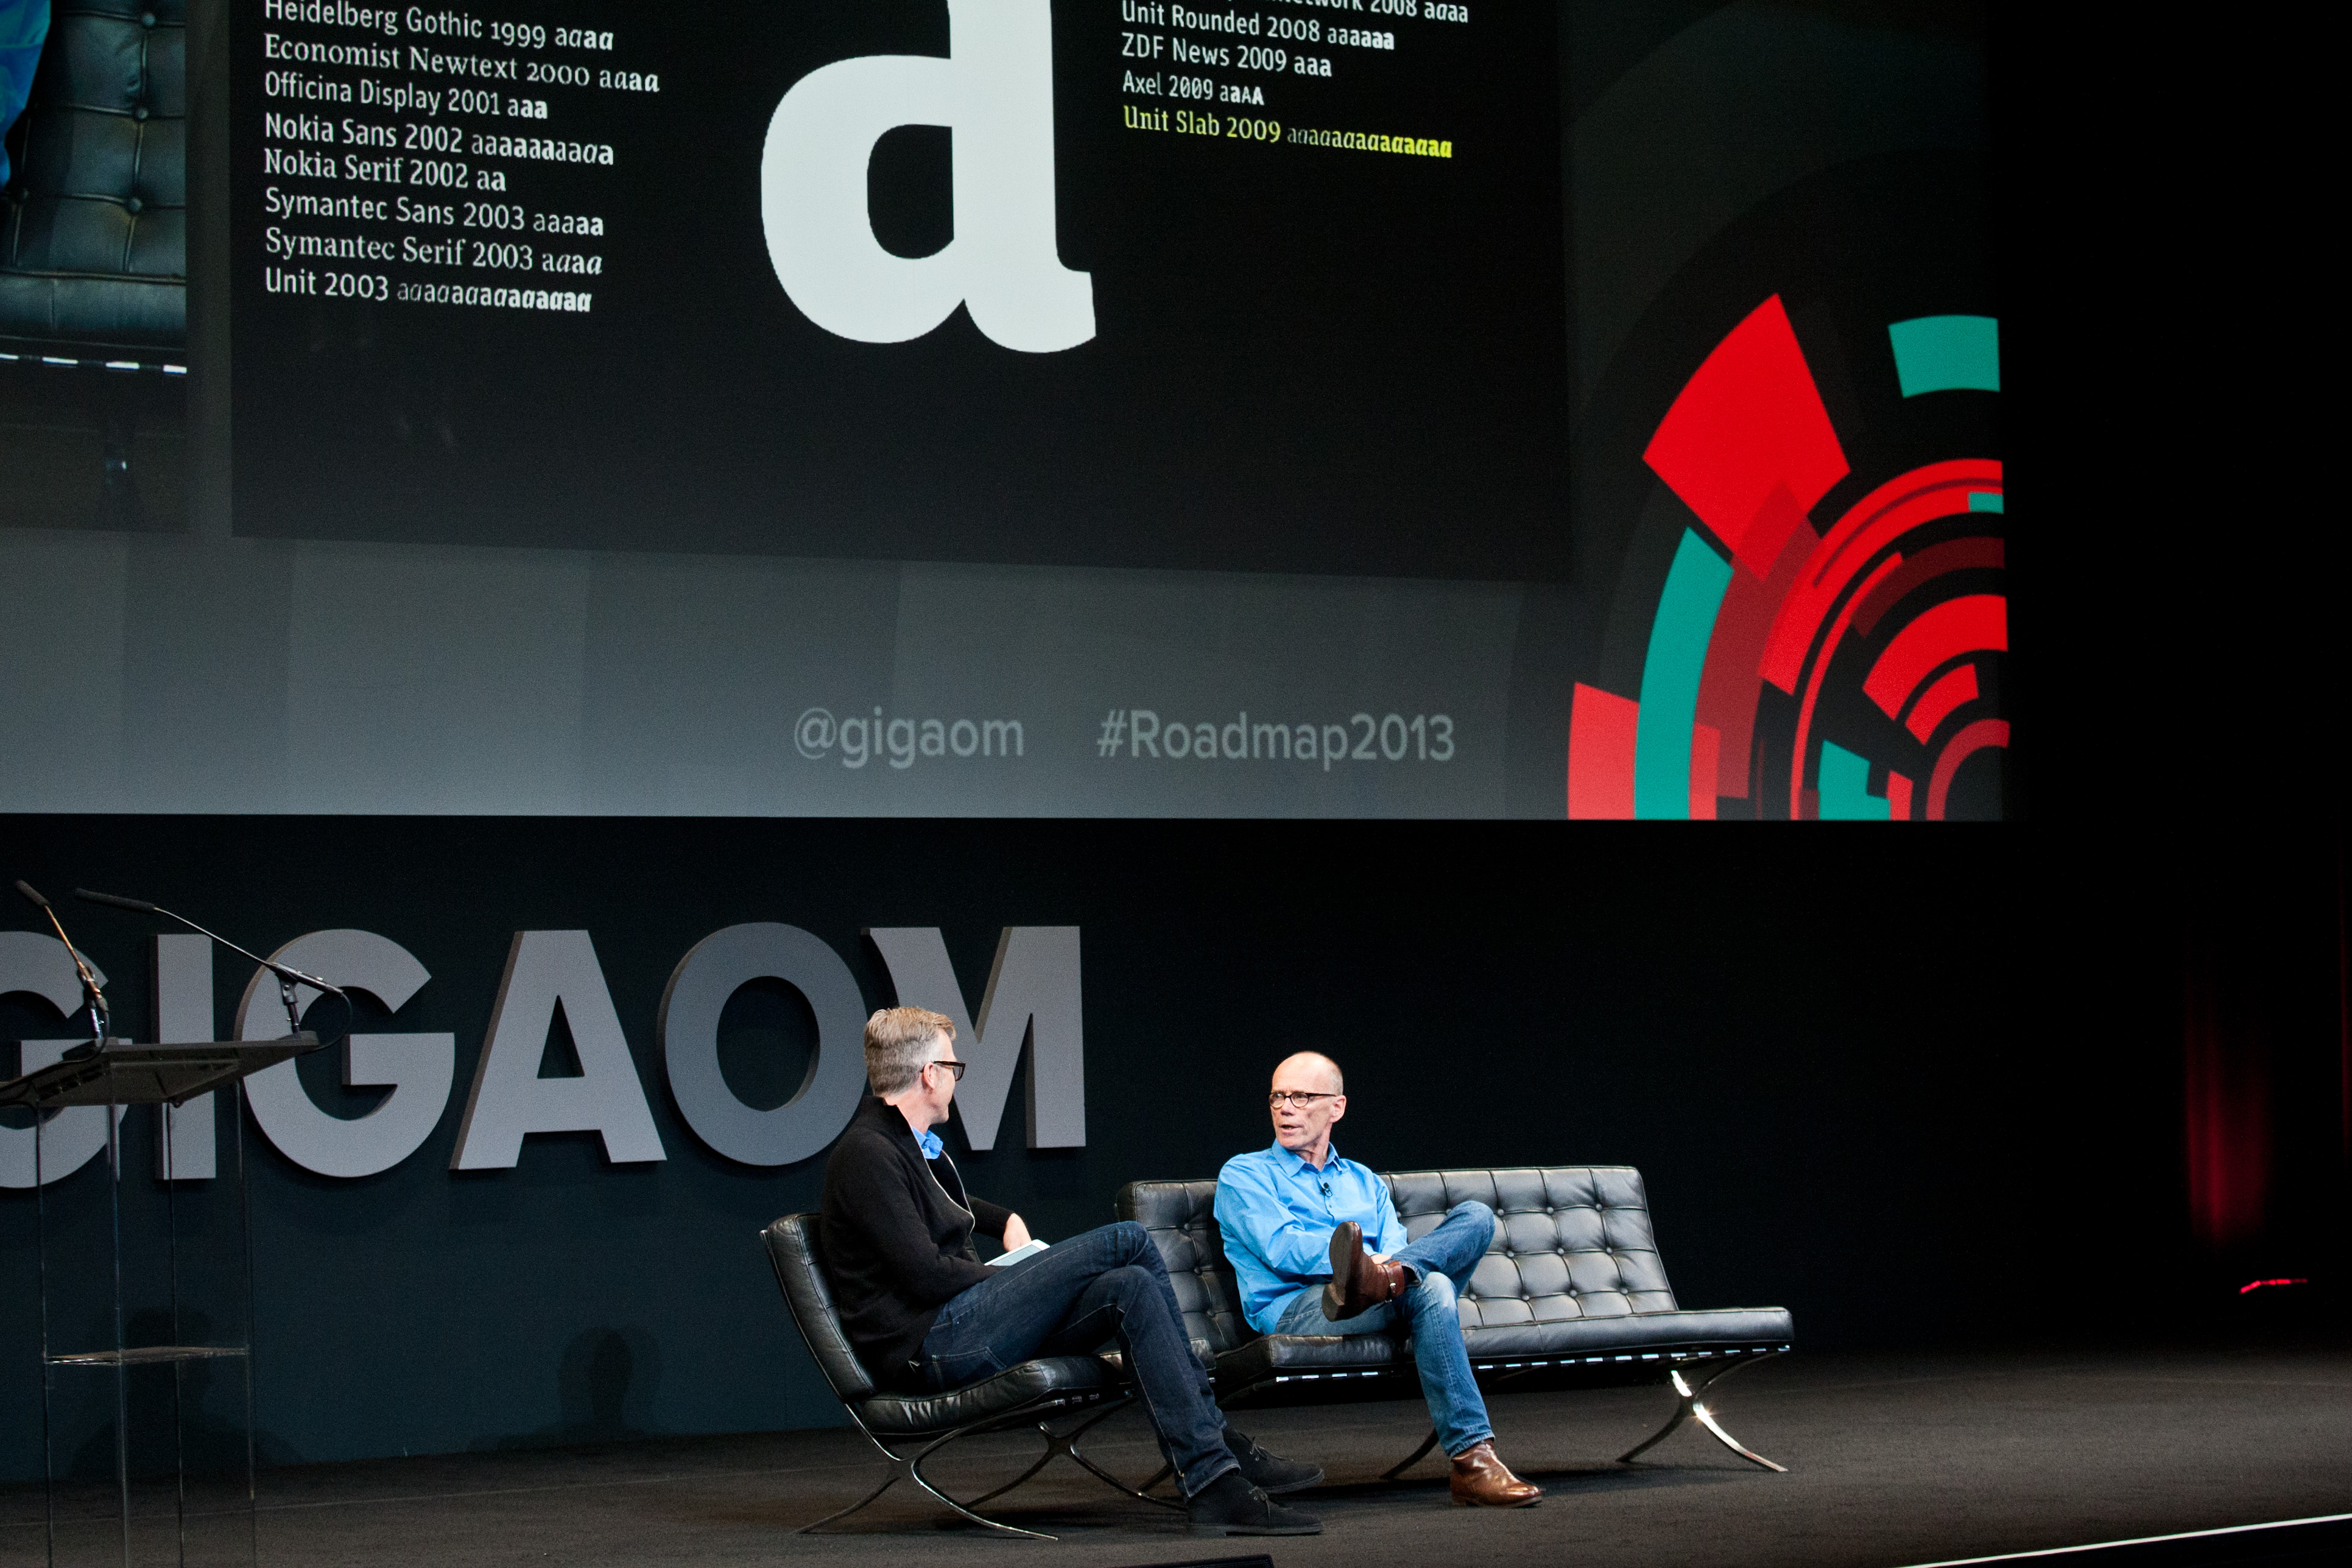 Erik Spiekermann, Designer, Edenspiekermann; Jeff Veen, Vice President, Products, Adobe Roadmap 2013